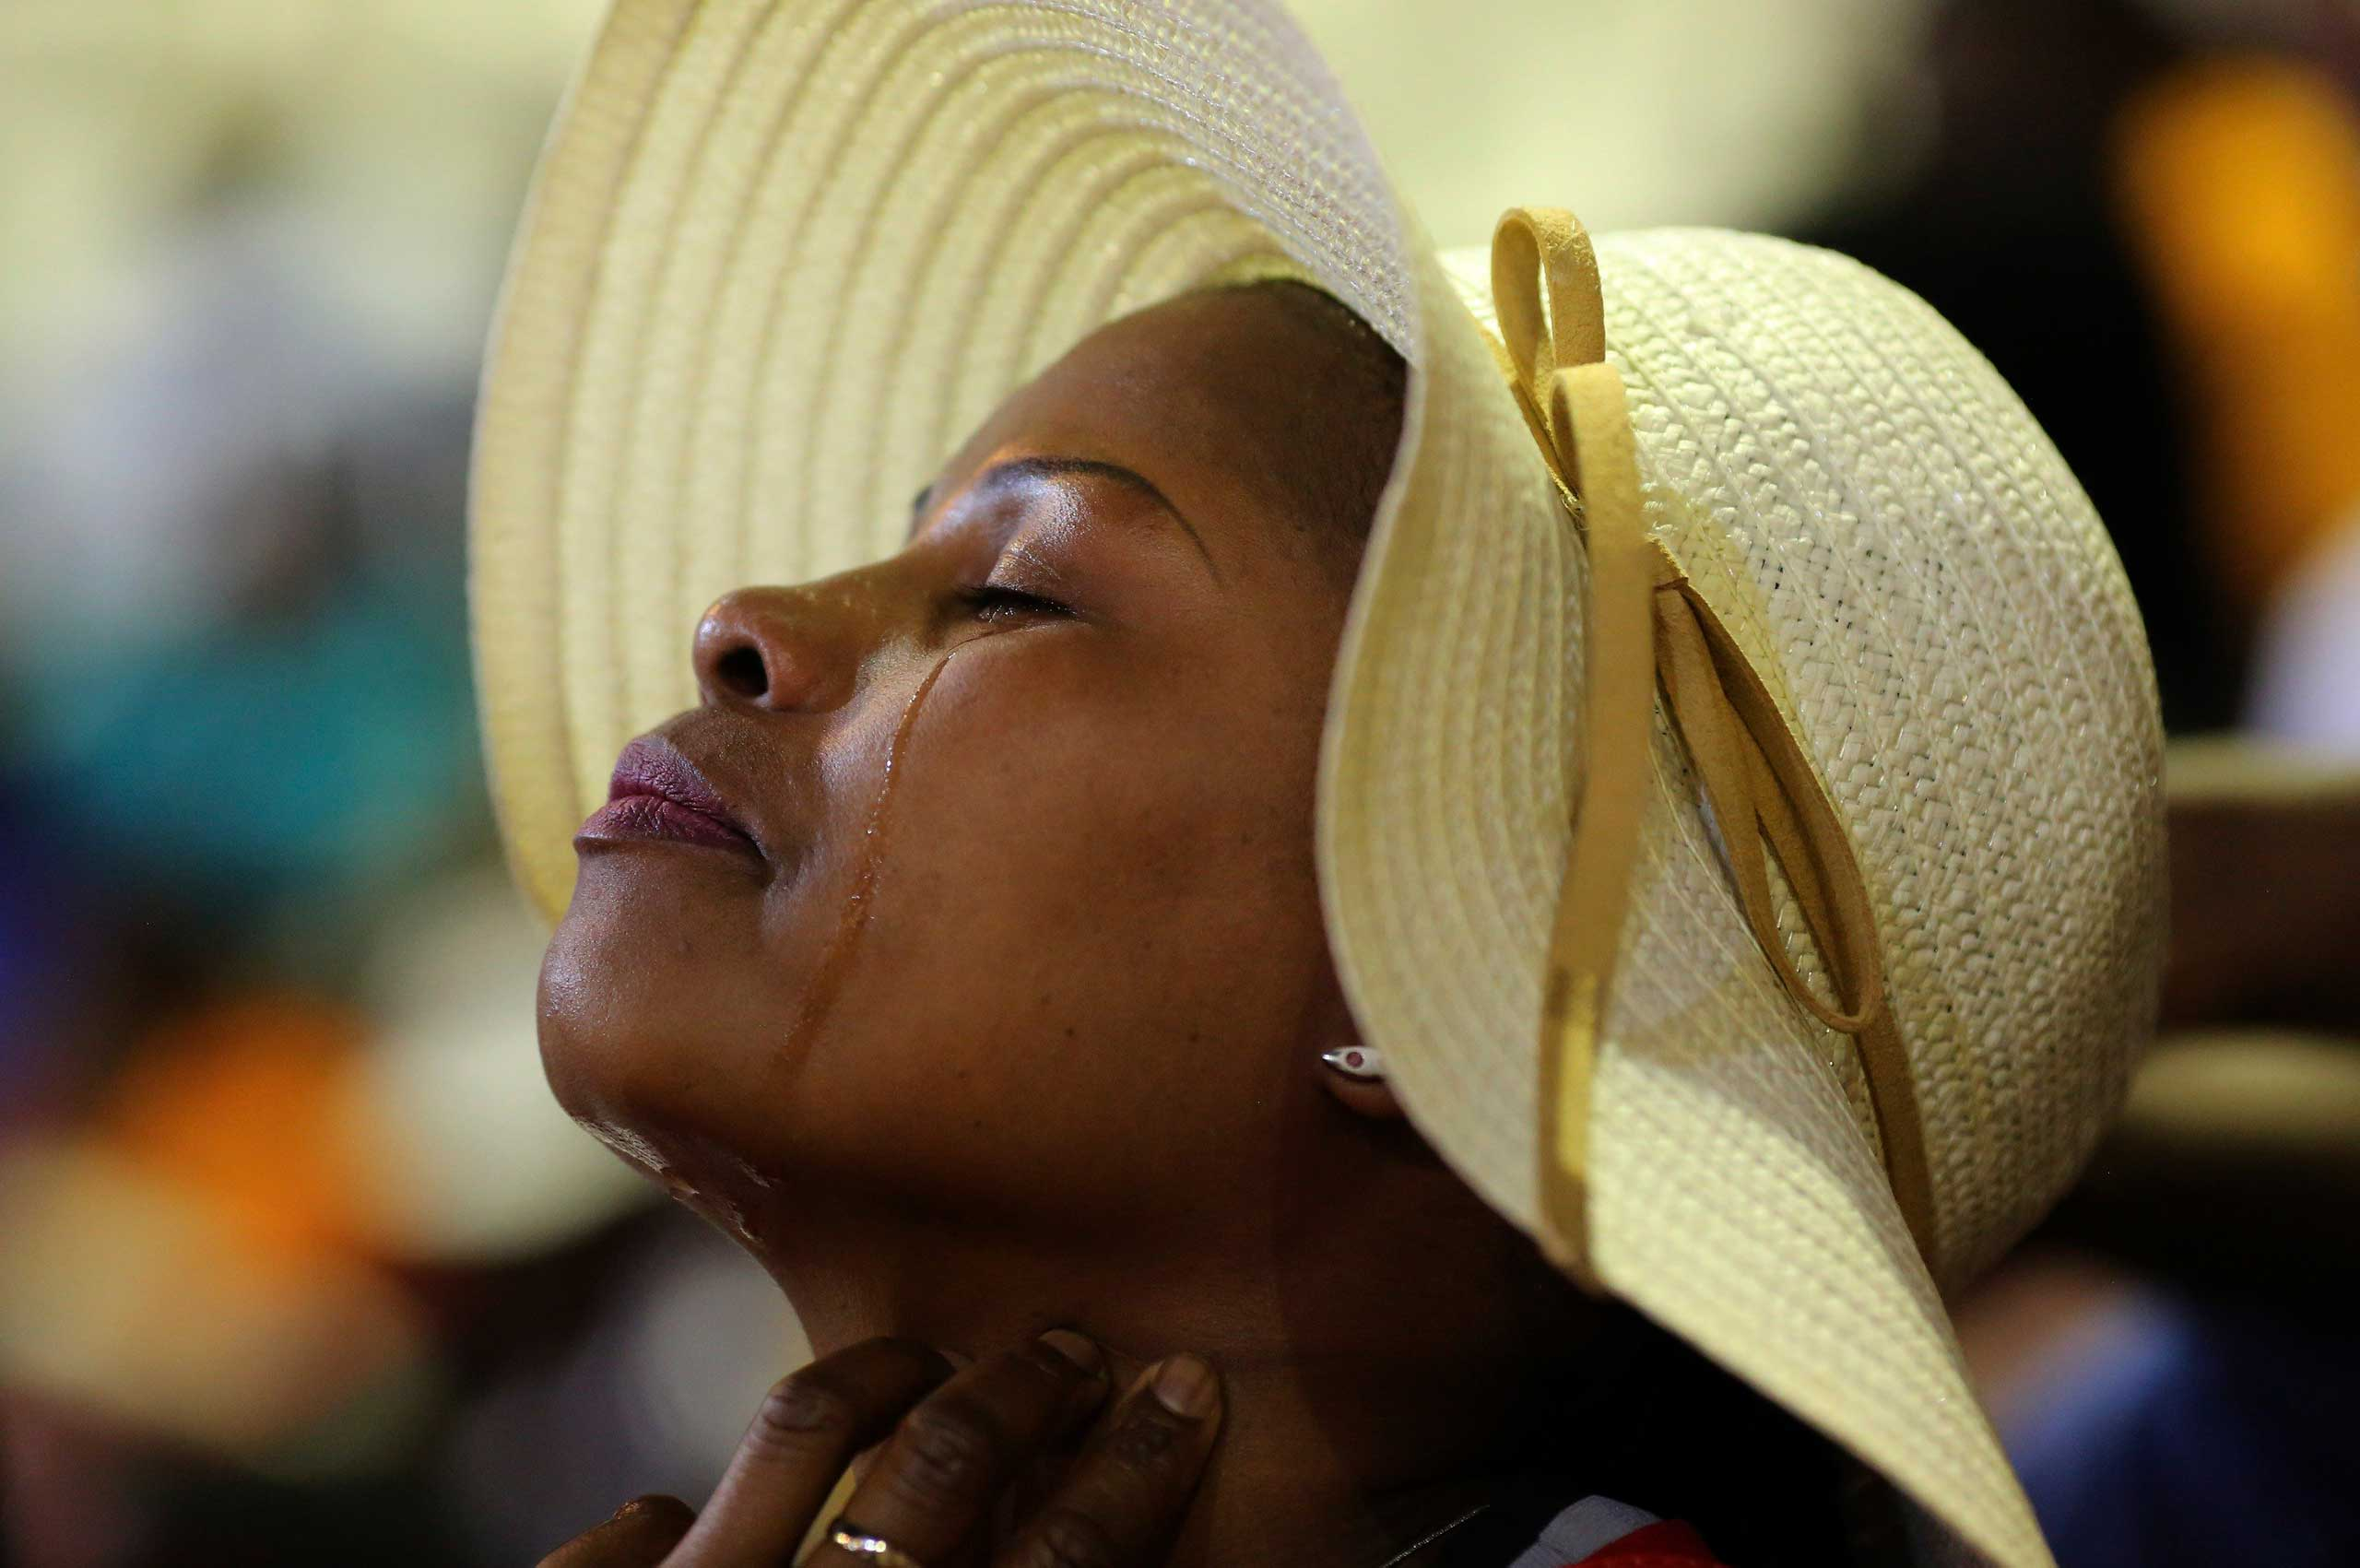 Oct. 27, 2014. A woman reacts during a joint memorial service Johannesburg for South African athletes, national soccer captain Senzo Meyiwa, female professional boxer Phindile Mwelase and Olympic silver medallist Mbulaeni Mulaudzi.